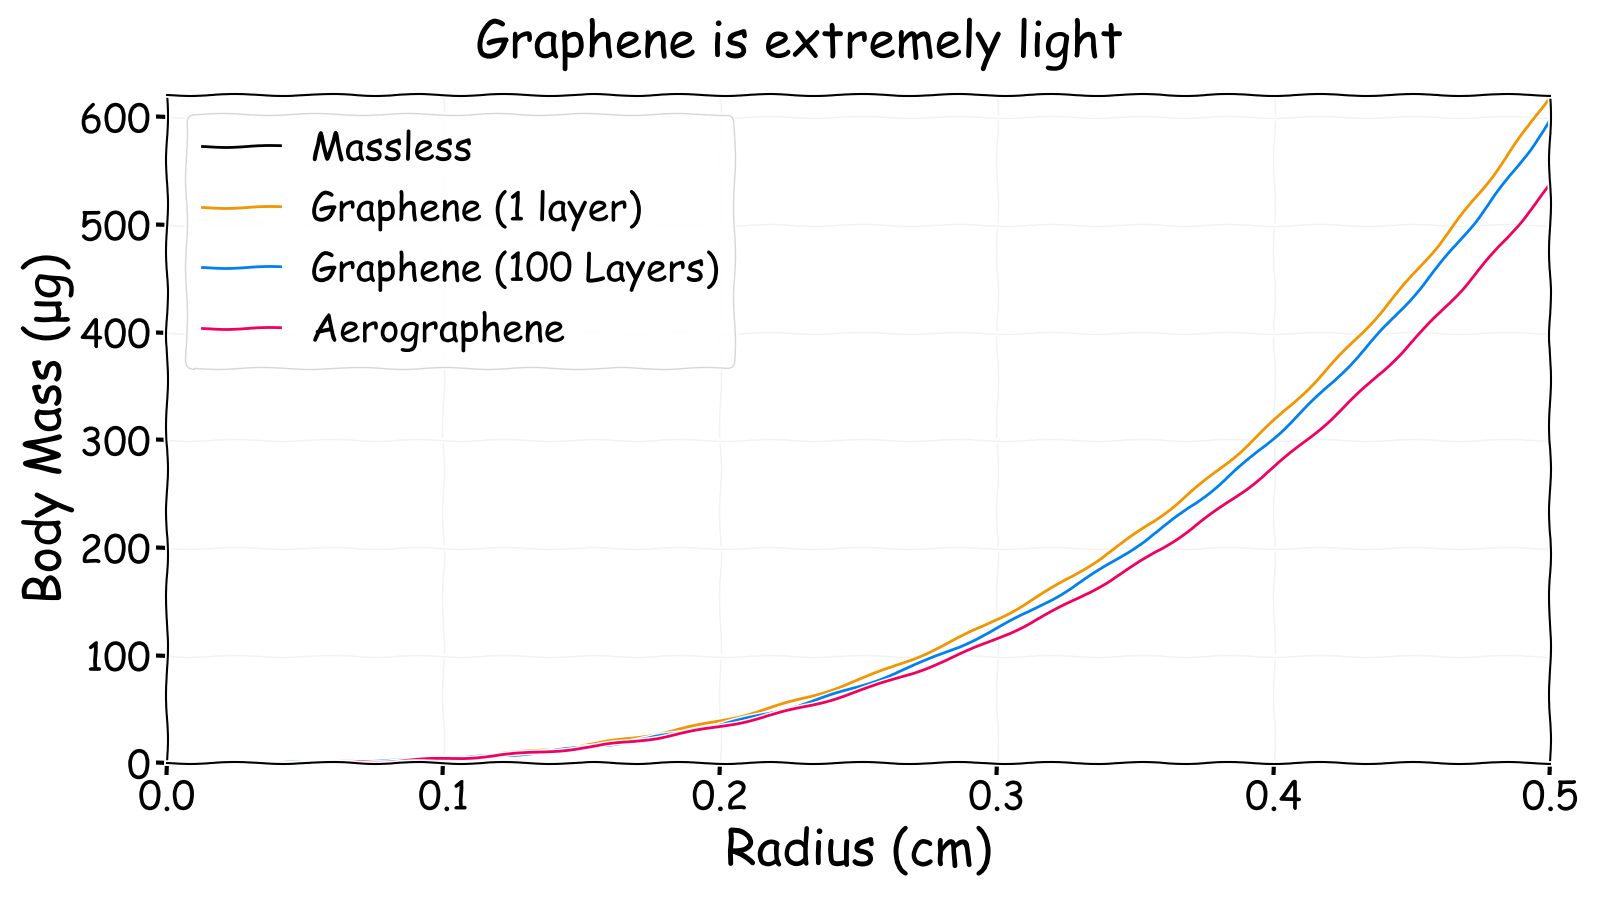 Neutrally buoyant body mass versus radius for different forms of graphene